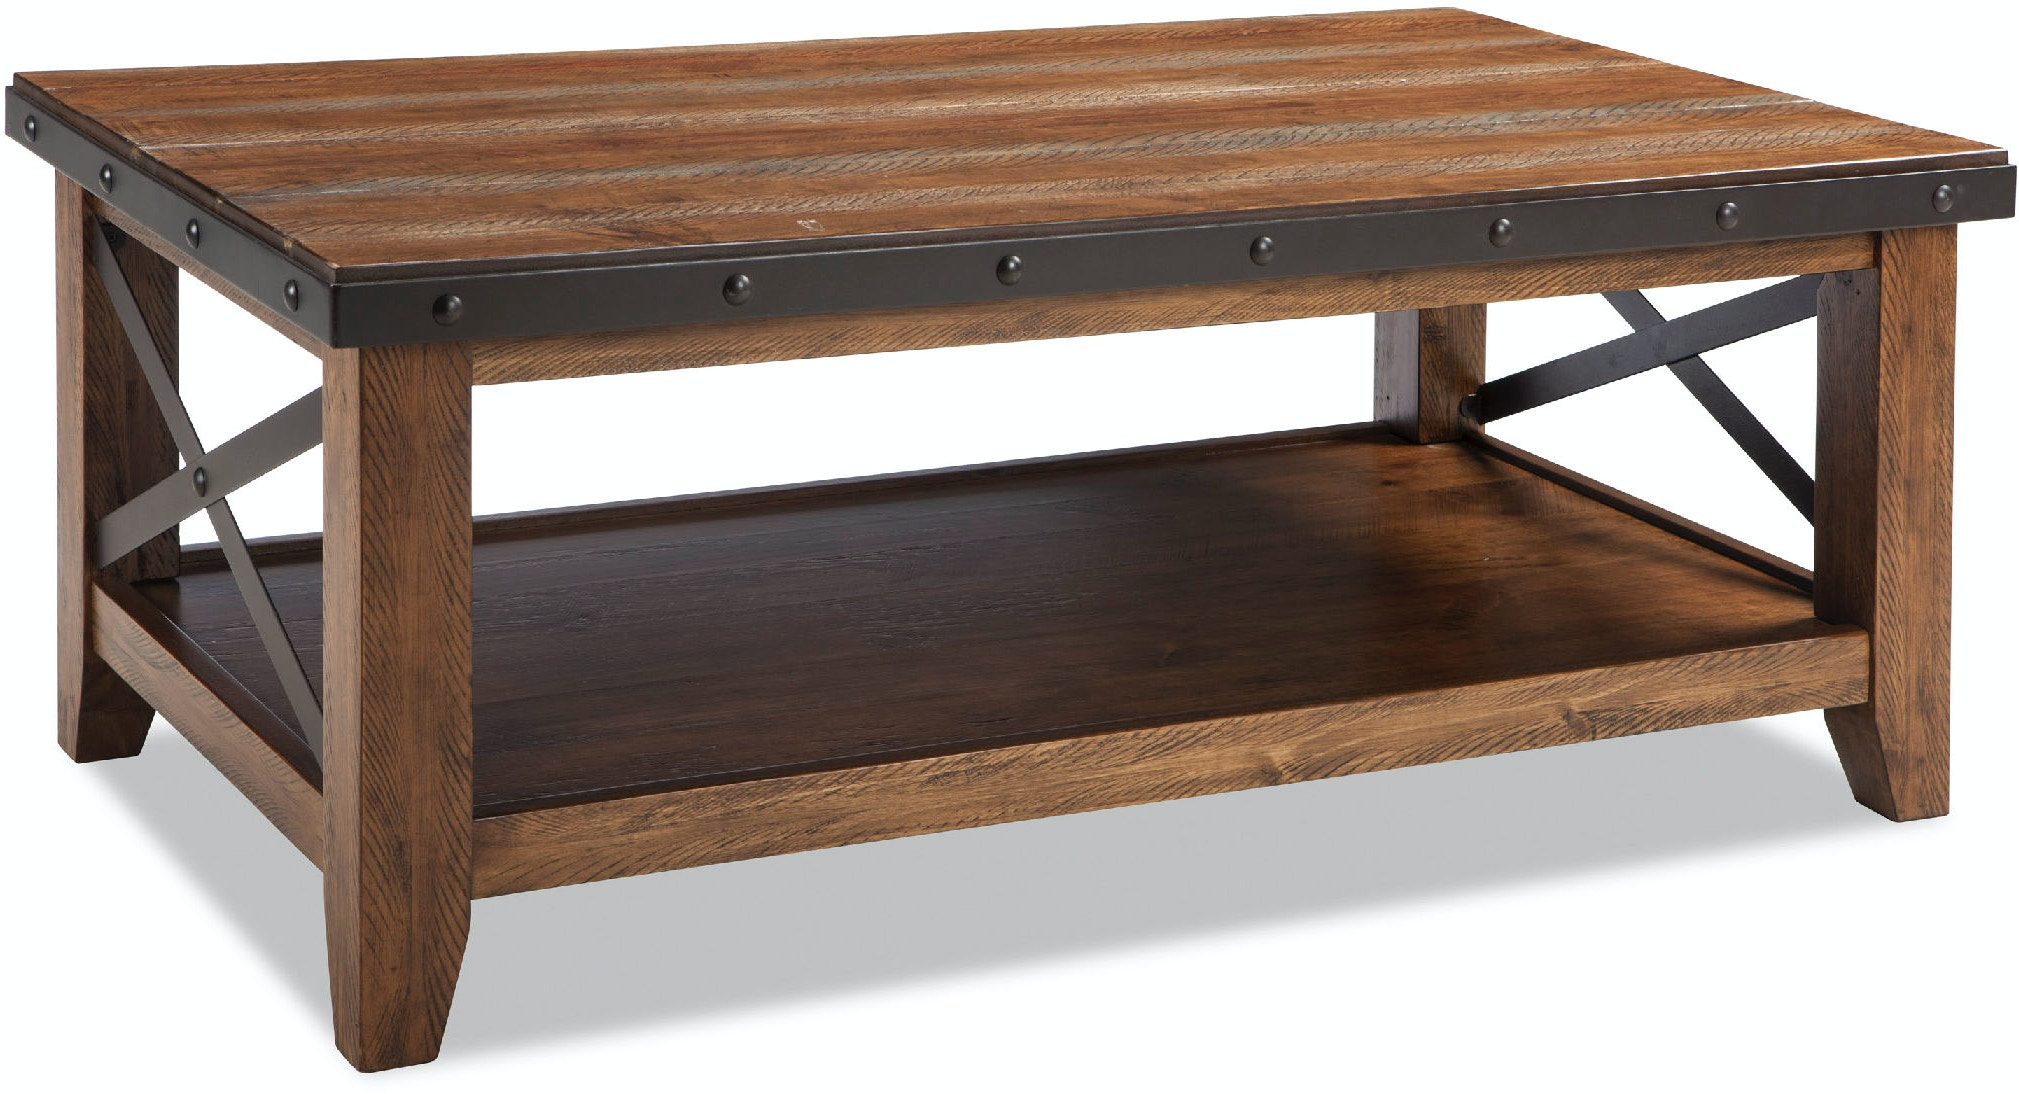 Intercon Living Room Taos Coffee Table TS TA 5028 CYB C Intercon